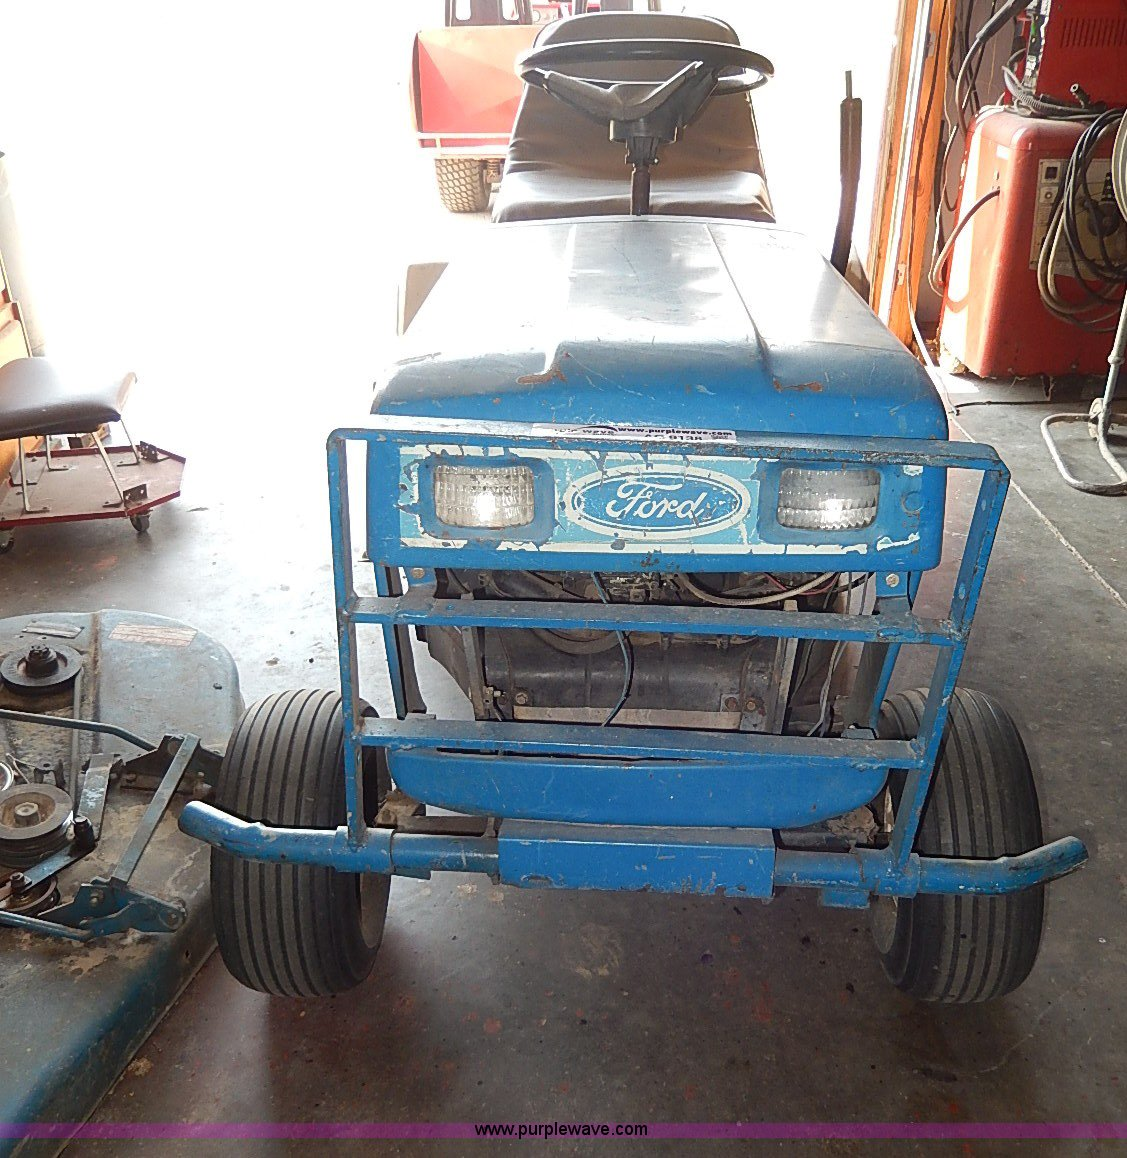 Ford Yt16 Lawn Mower Item Ac9138 Sold May 14 Vehicles A Wiring Diagram Full Size In New Window